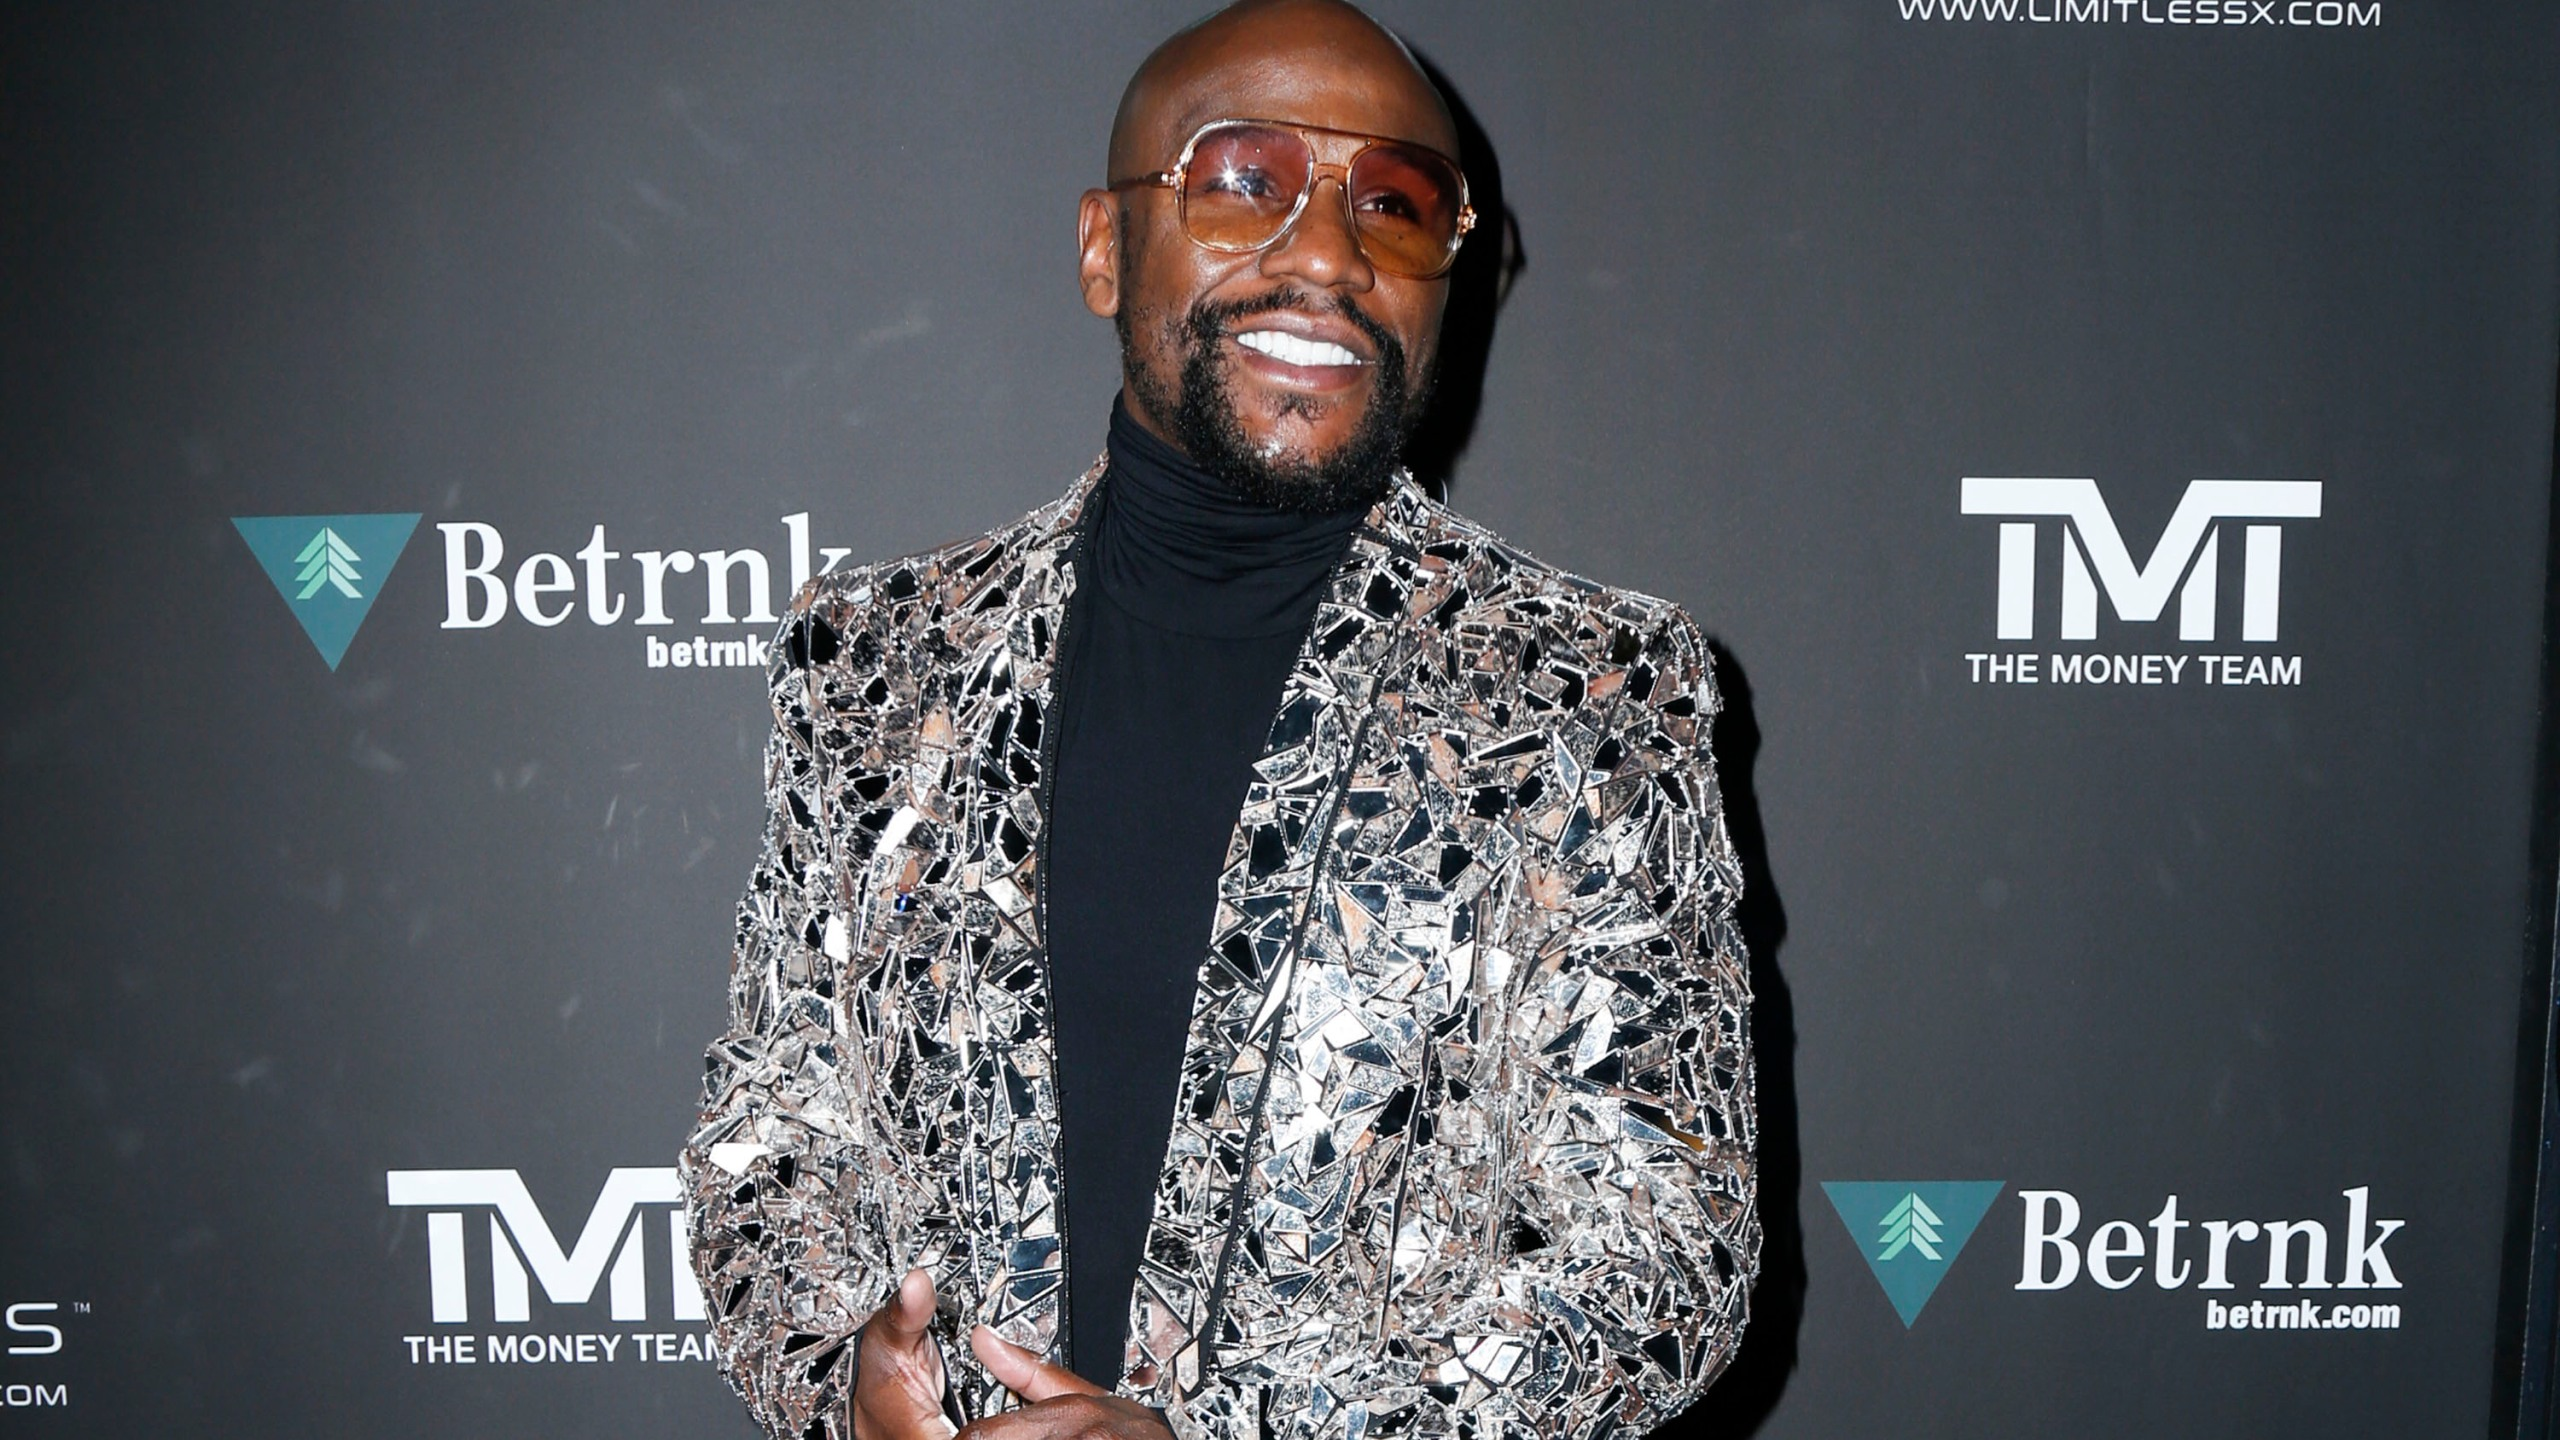 Floyd Mayweather walking the red carpet at Floyd Mayweather's 43rd Birthday Celebration held at Sunset Eden on February 21, 2020 in Los Angeles, California USA (Photo by Parisa Afsahi/Sipa USA)(Sipa via AP Images)